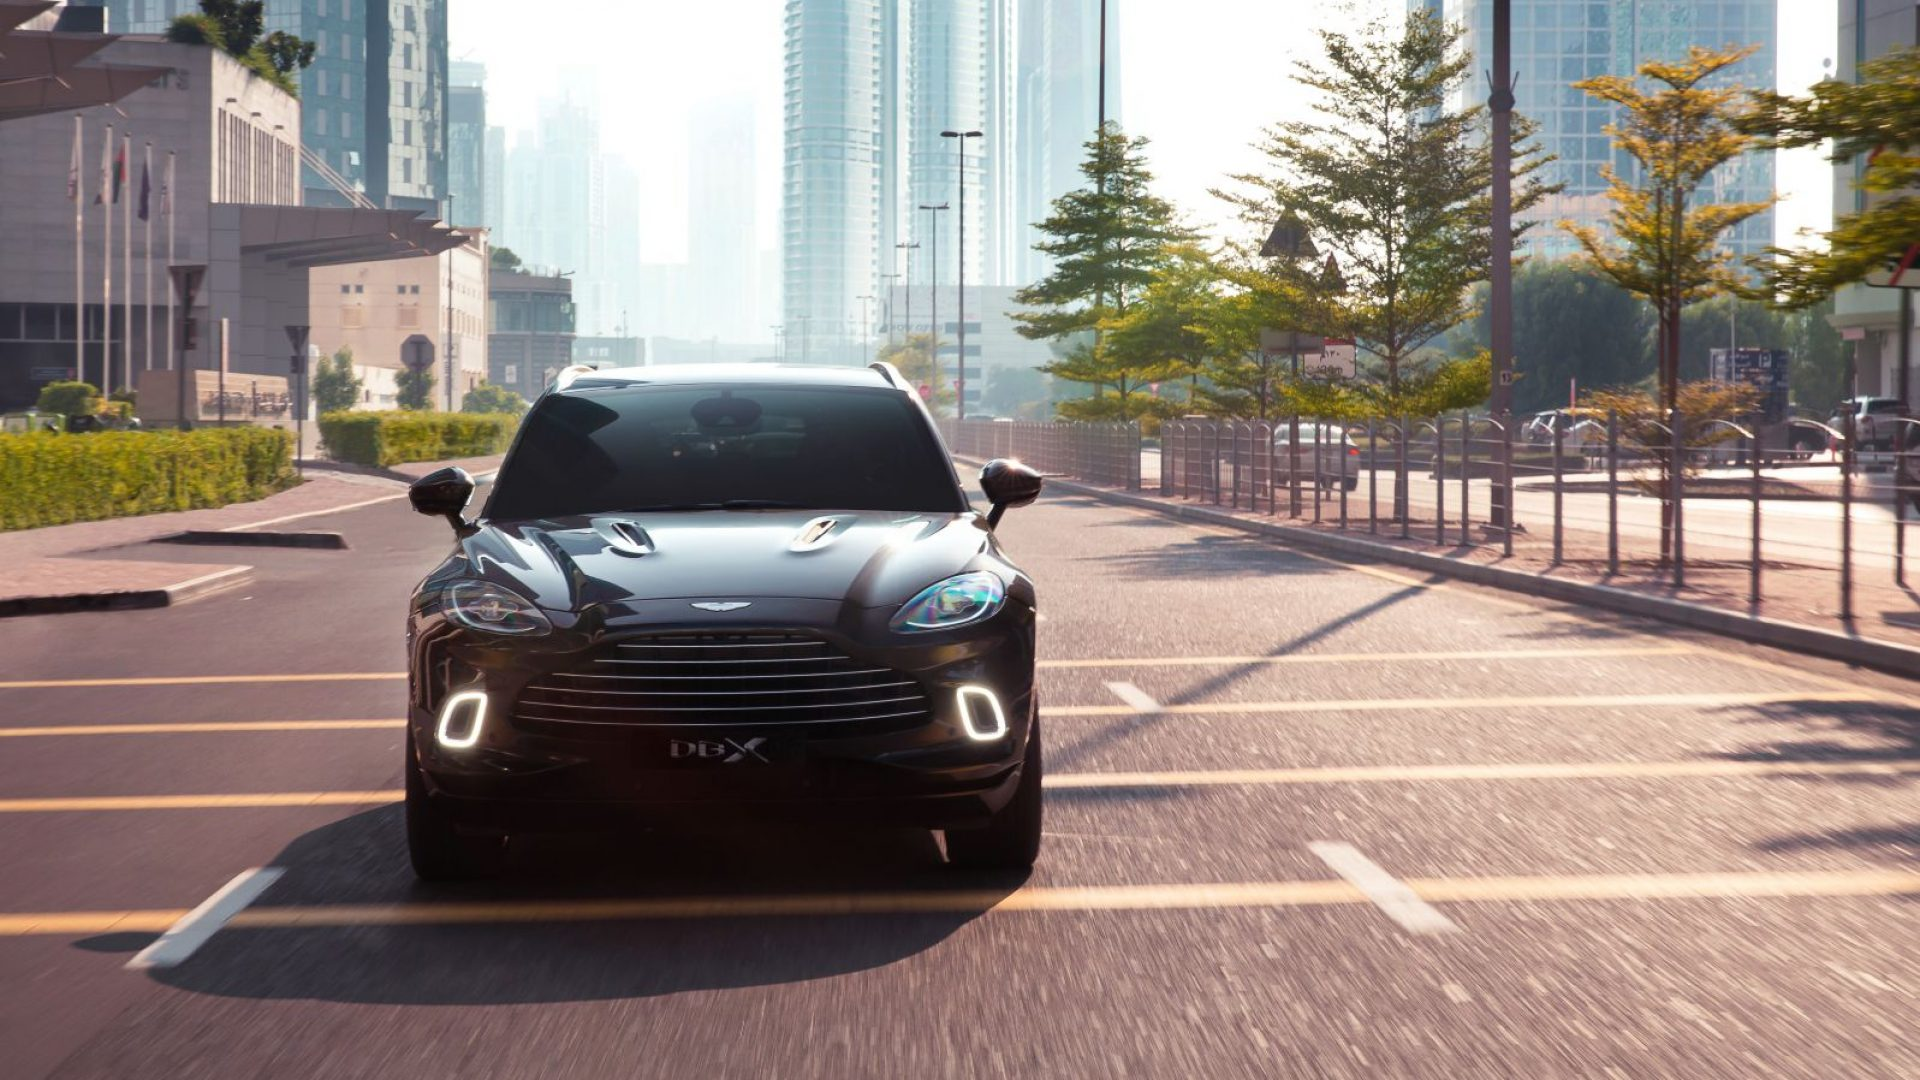 aston-martin-dbx-in-the-middle-east-1-jpg.